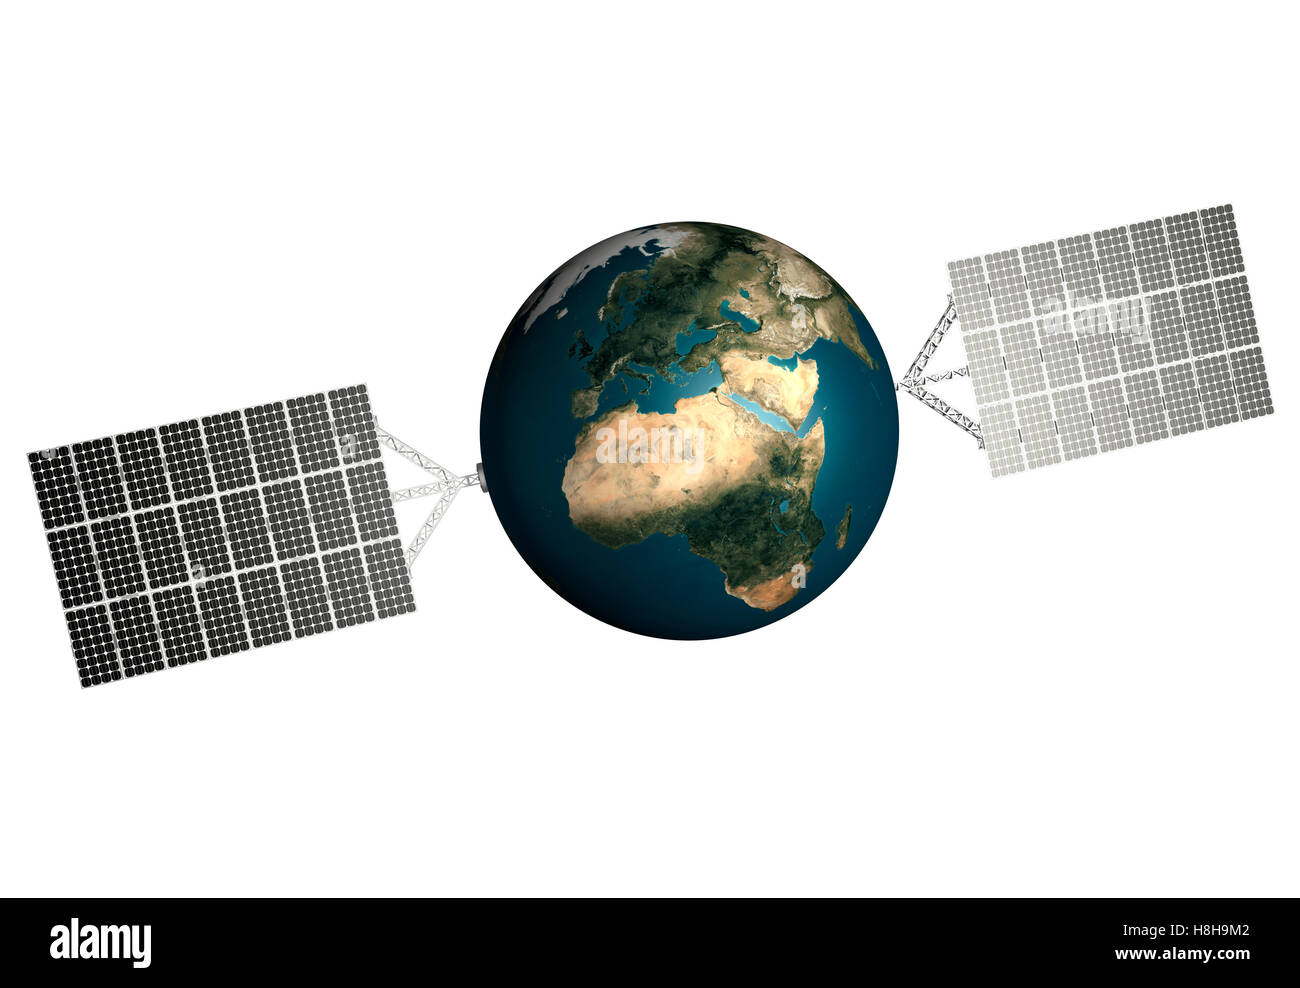 Planet Earth with solar panels attached to it, solar power, environmental technologies and sustainable power sources - Stock Image